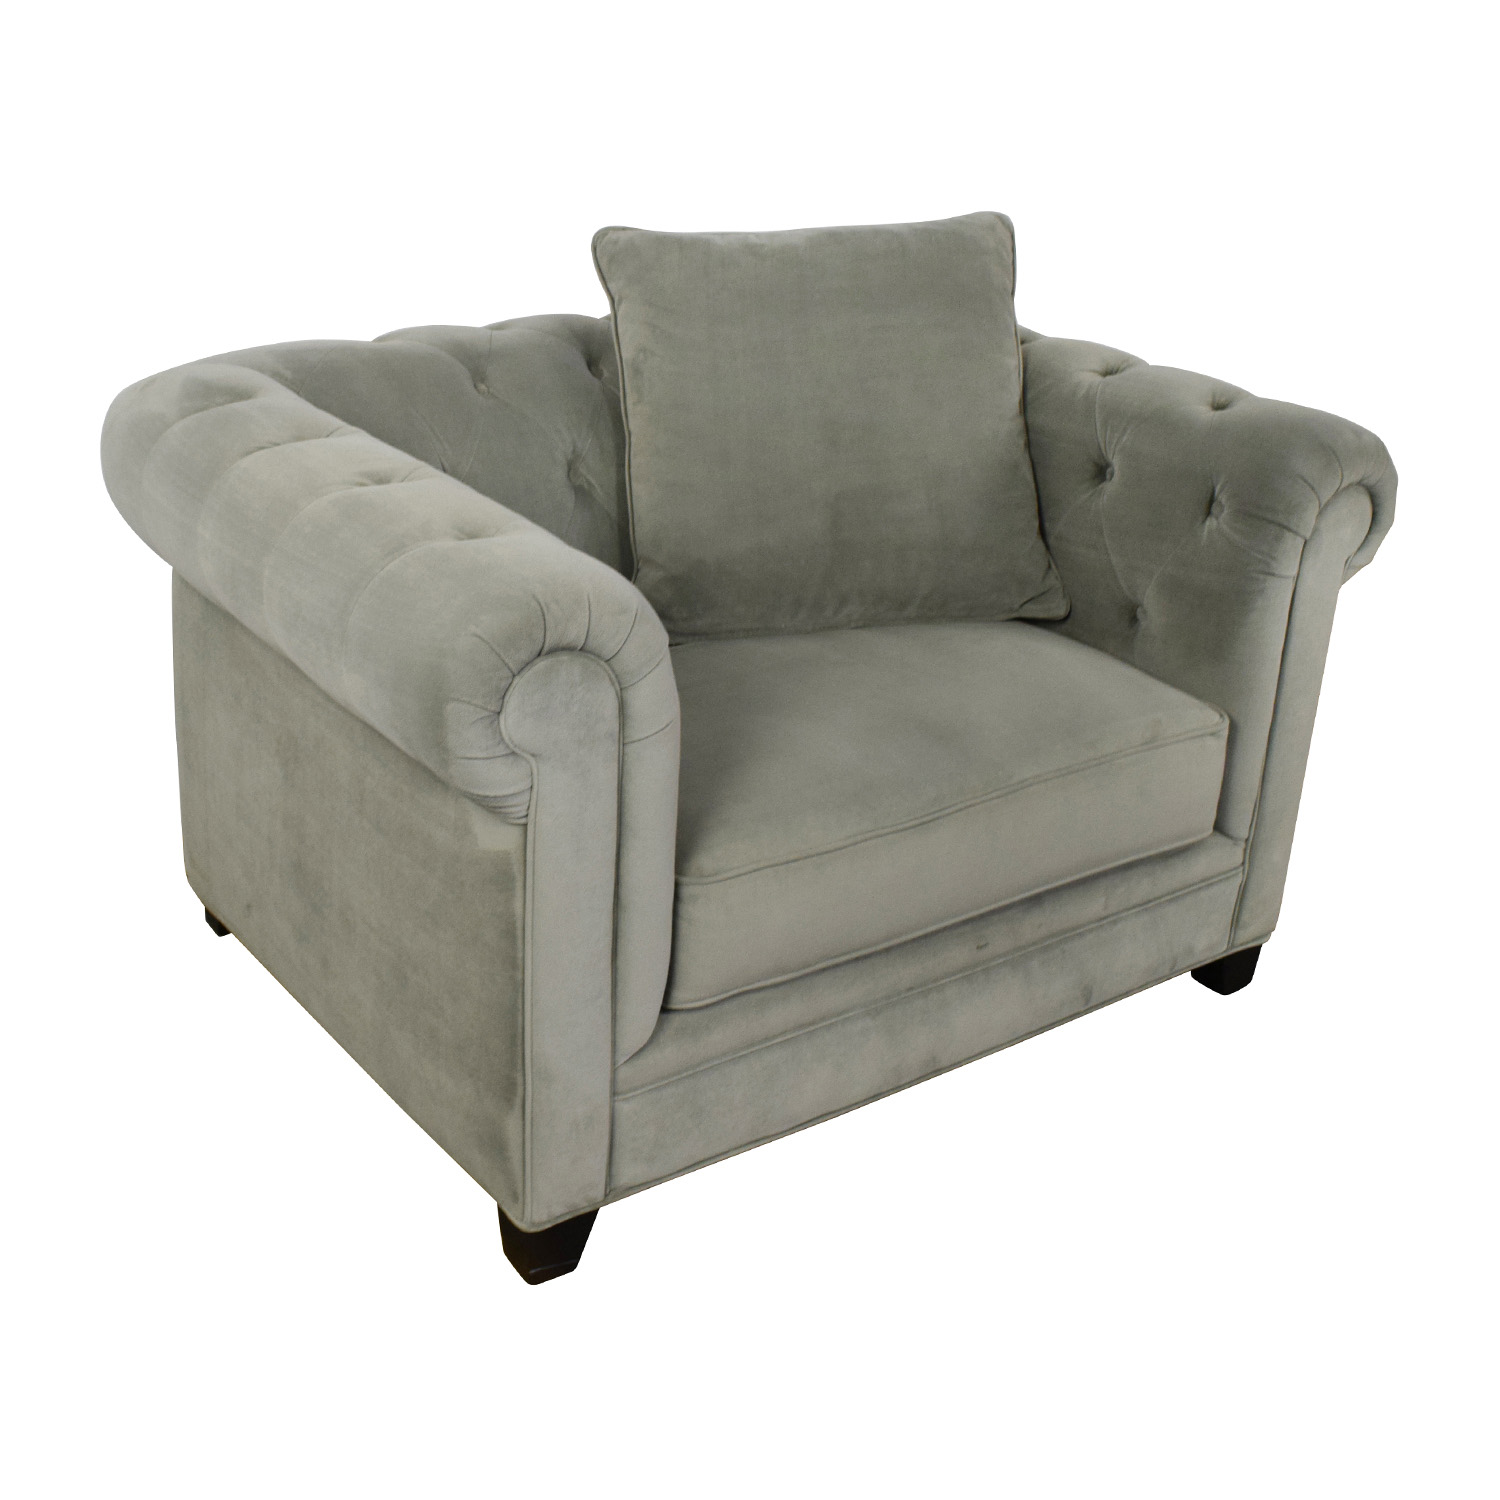 tufted accent chairs leather chair bed sleeper 71 off martha stewart collection